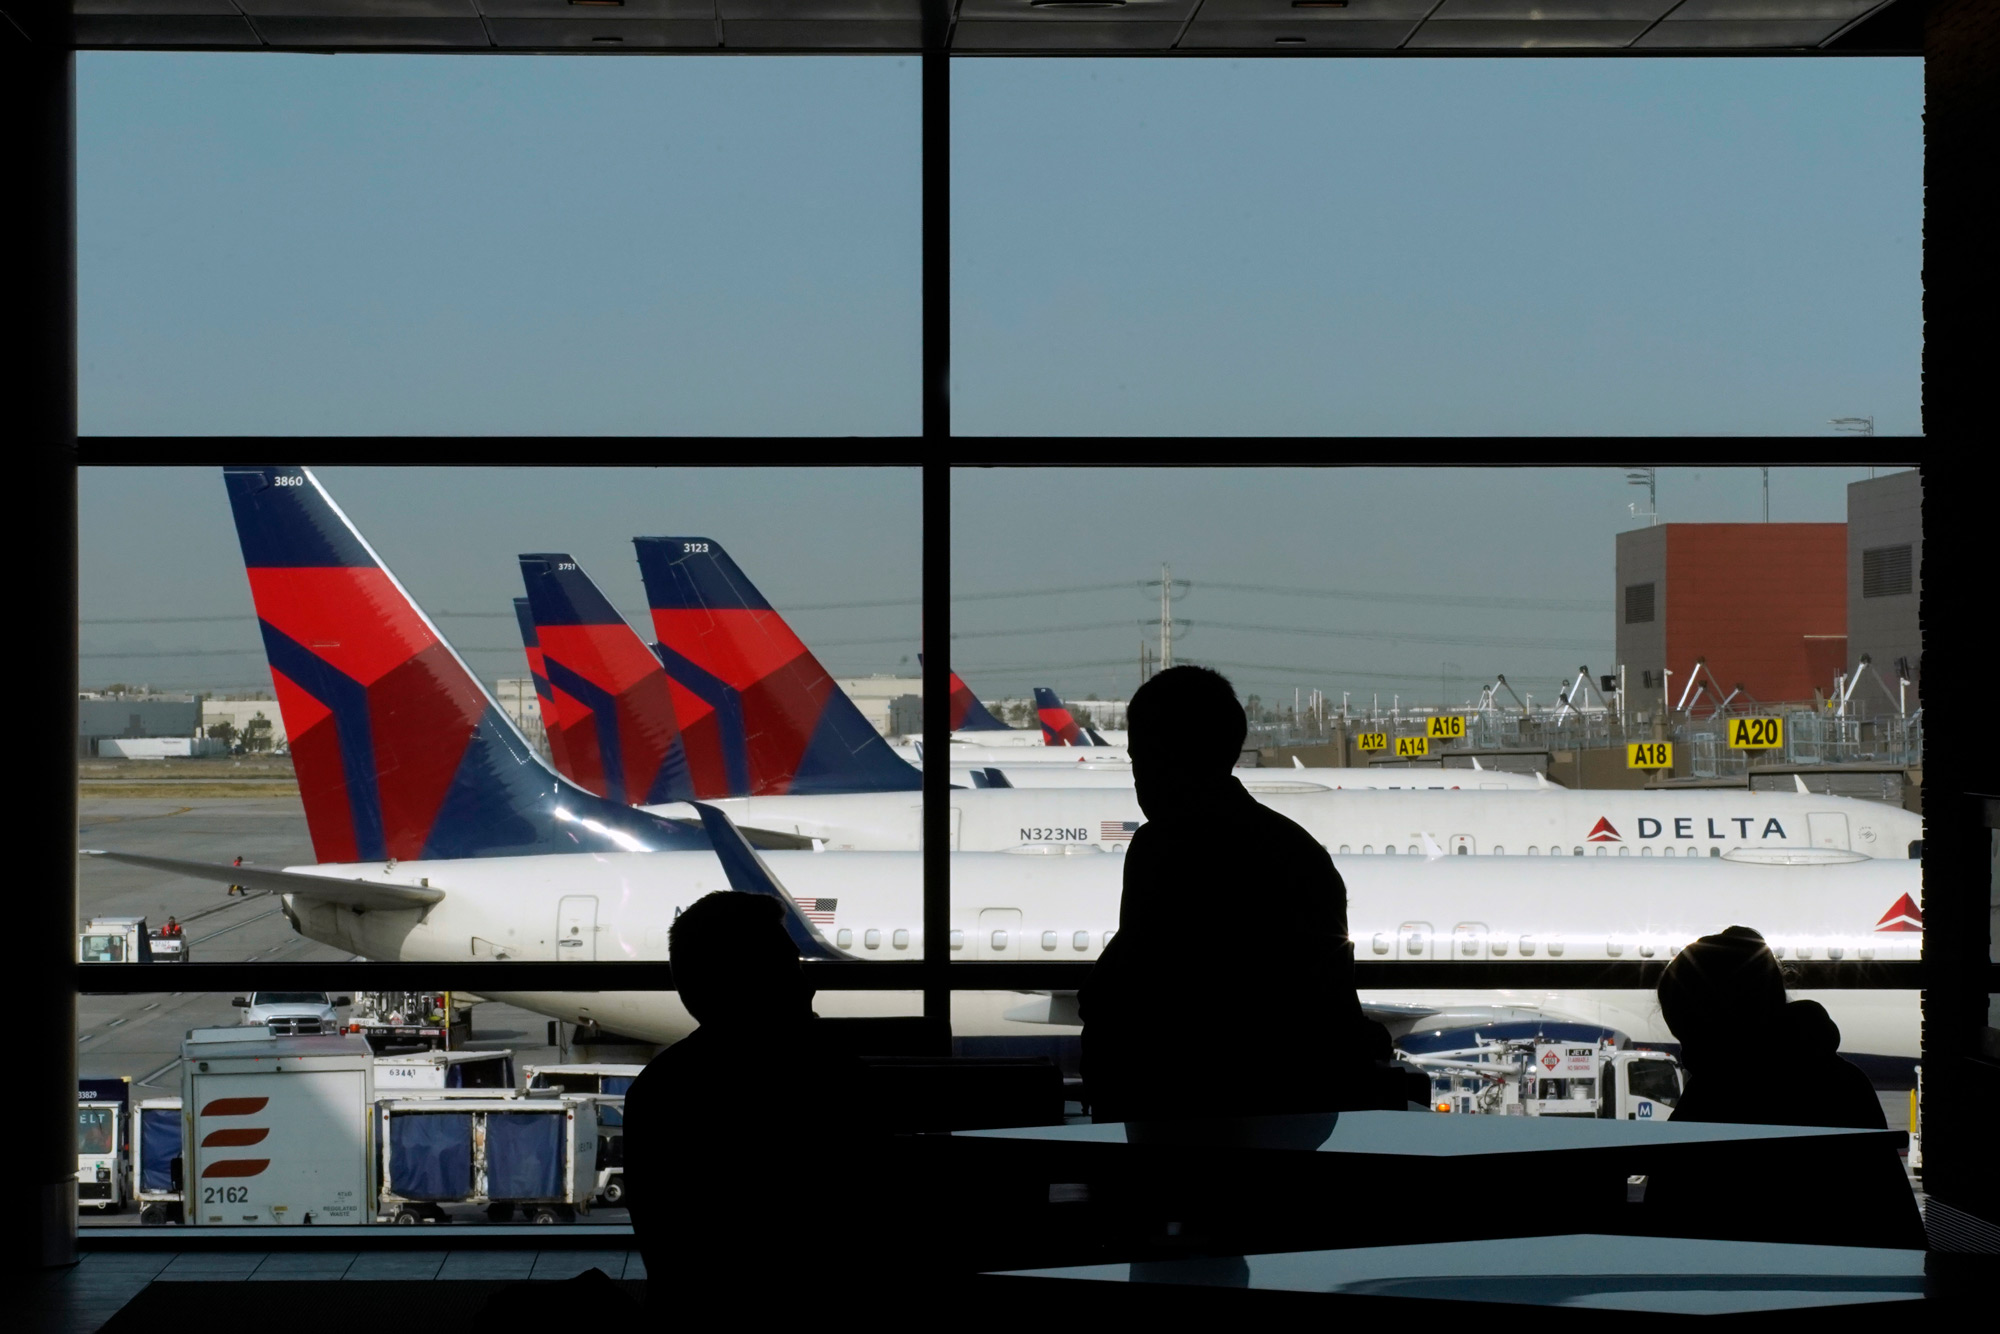 Travelers wait for flights as Delta Air Lines planes sit at gates at the Salt Lake City International Airport in Salt Lake City, Utah, on September 15.